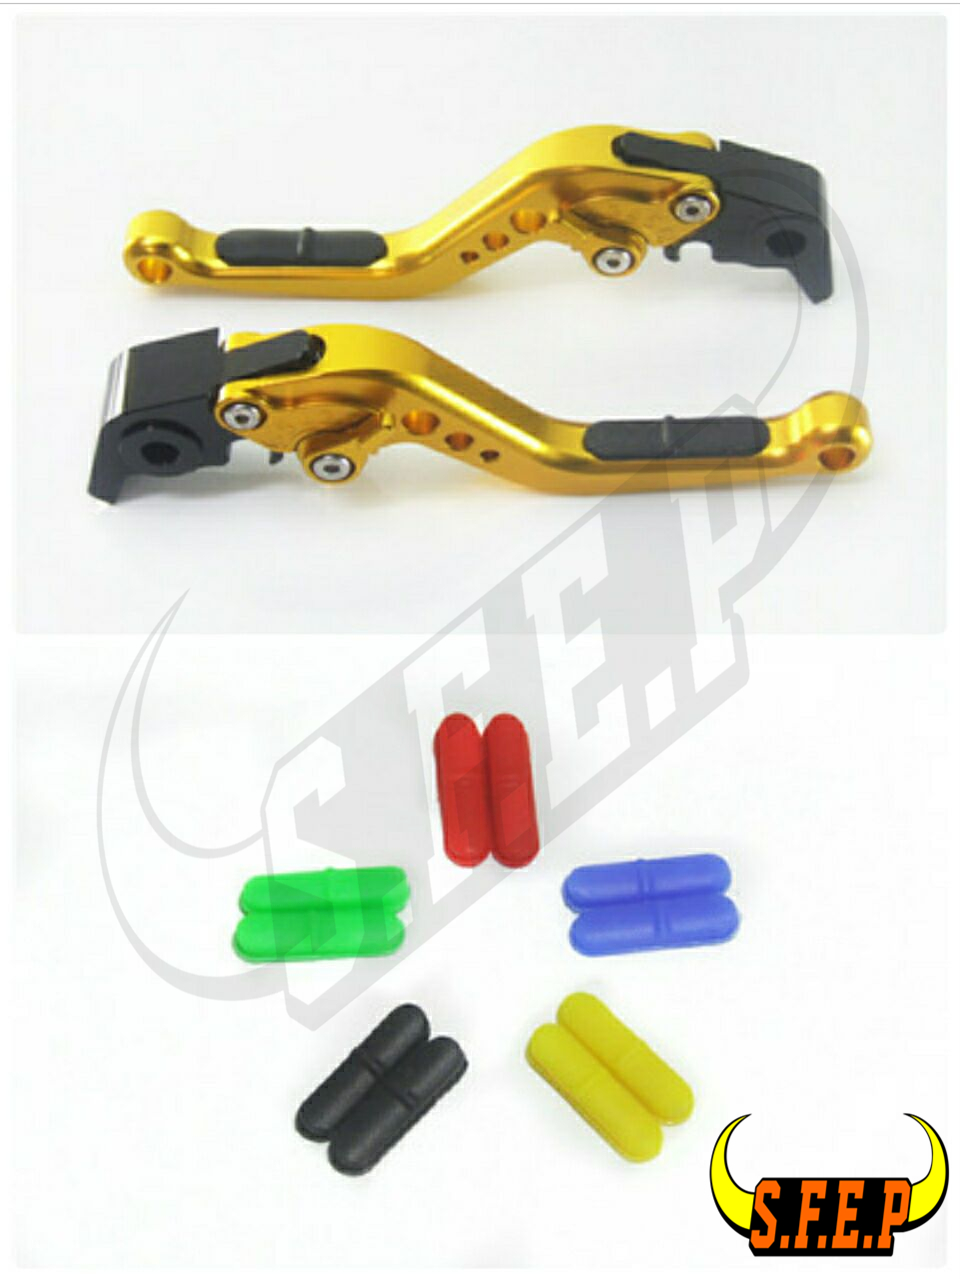 CNC Adjustable Motorcycle Brake and Clutch Levers with Anti-Slip For Honda Black Spirit 2014-2016